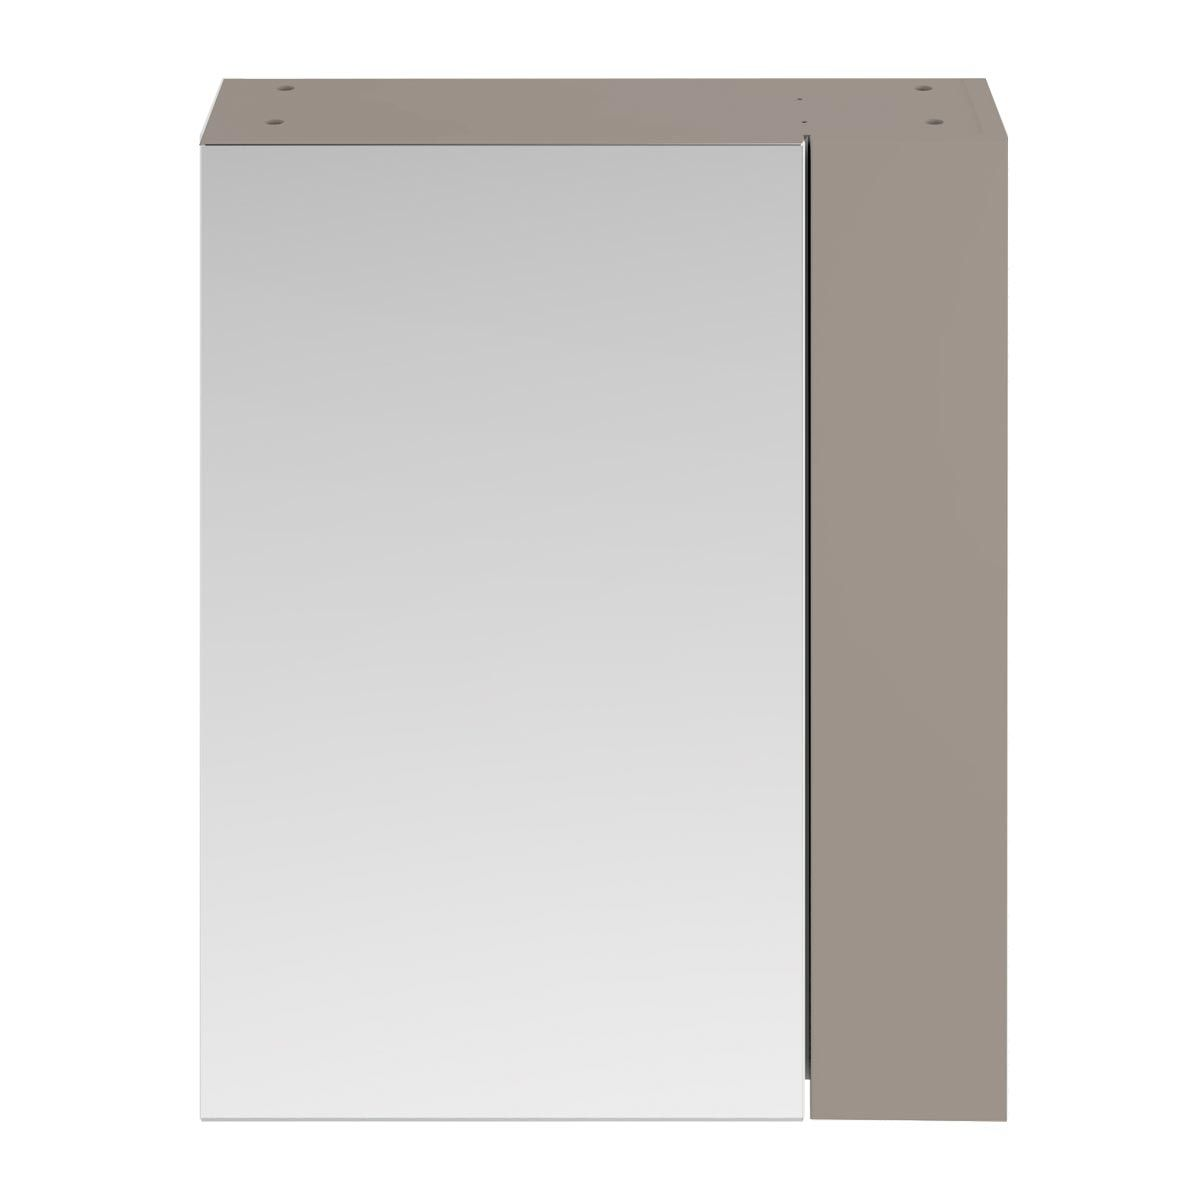 Nuie Athena Stone Grey Double Mirrored Bathroom Cabinet 600mm